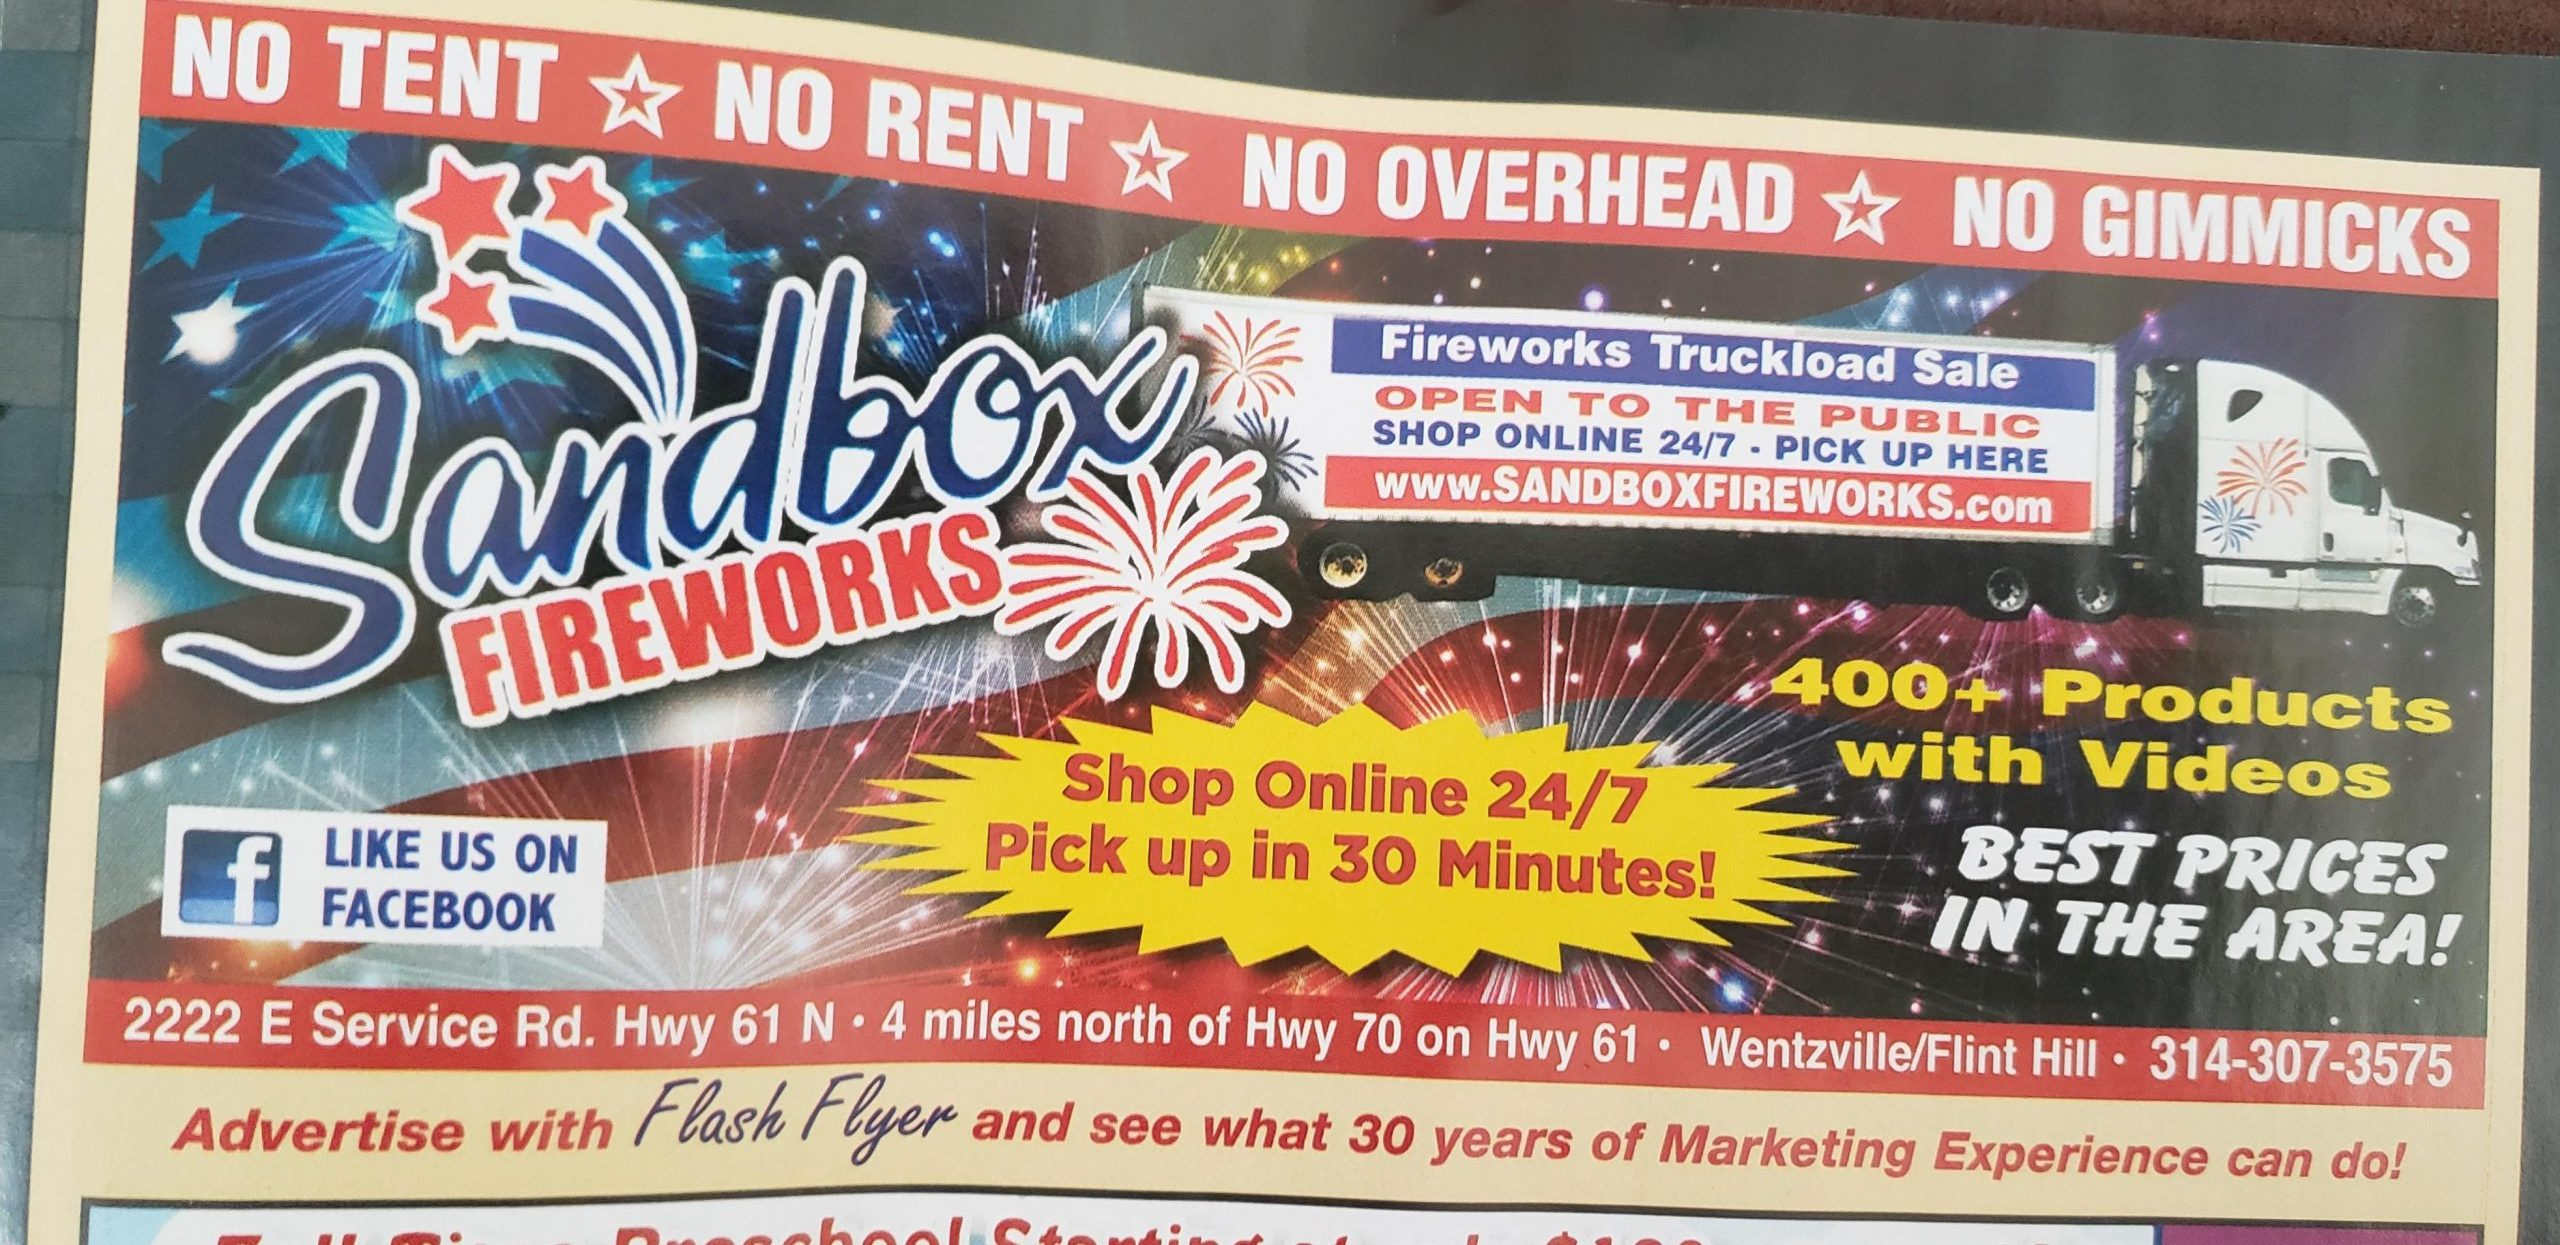 In need of Fireworks for the upcoming 4th of July Holiday, Sandbox Fireworks right here in Flint Hill at SANDBOXFIREWORKS.com